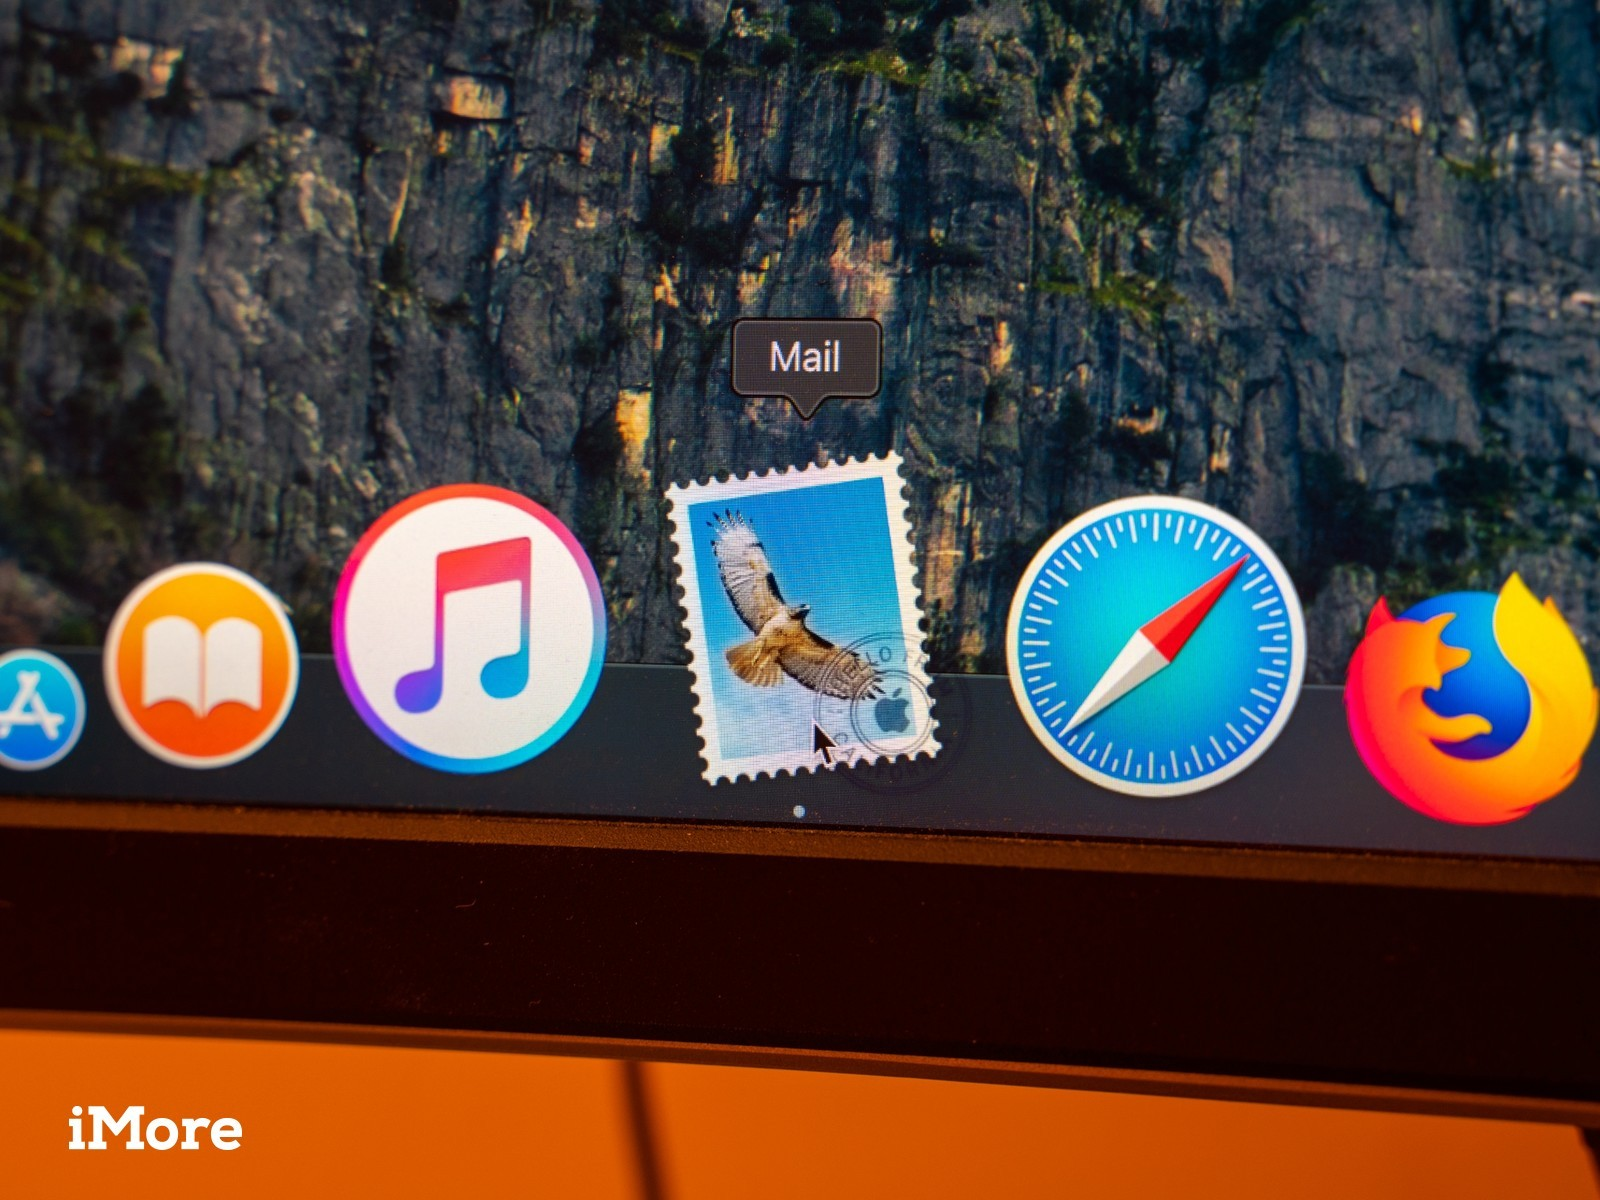 How To Organize Your Mailboxes In The Mail App On Mac - Apple Music , HD Wallpaper & Backgrounds